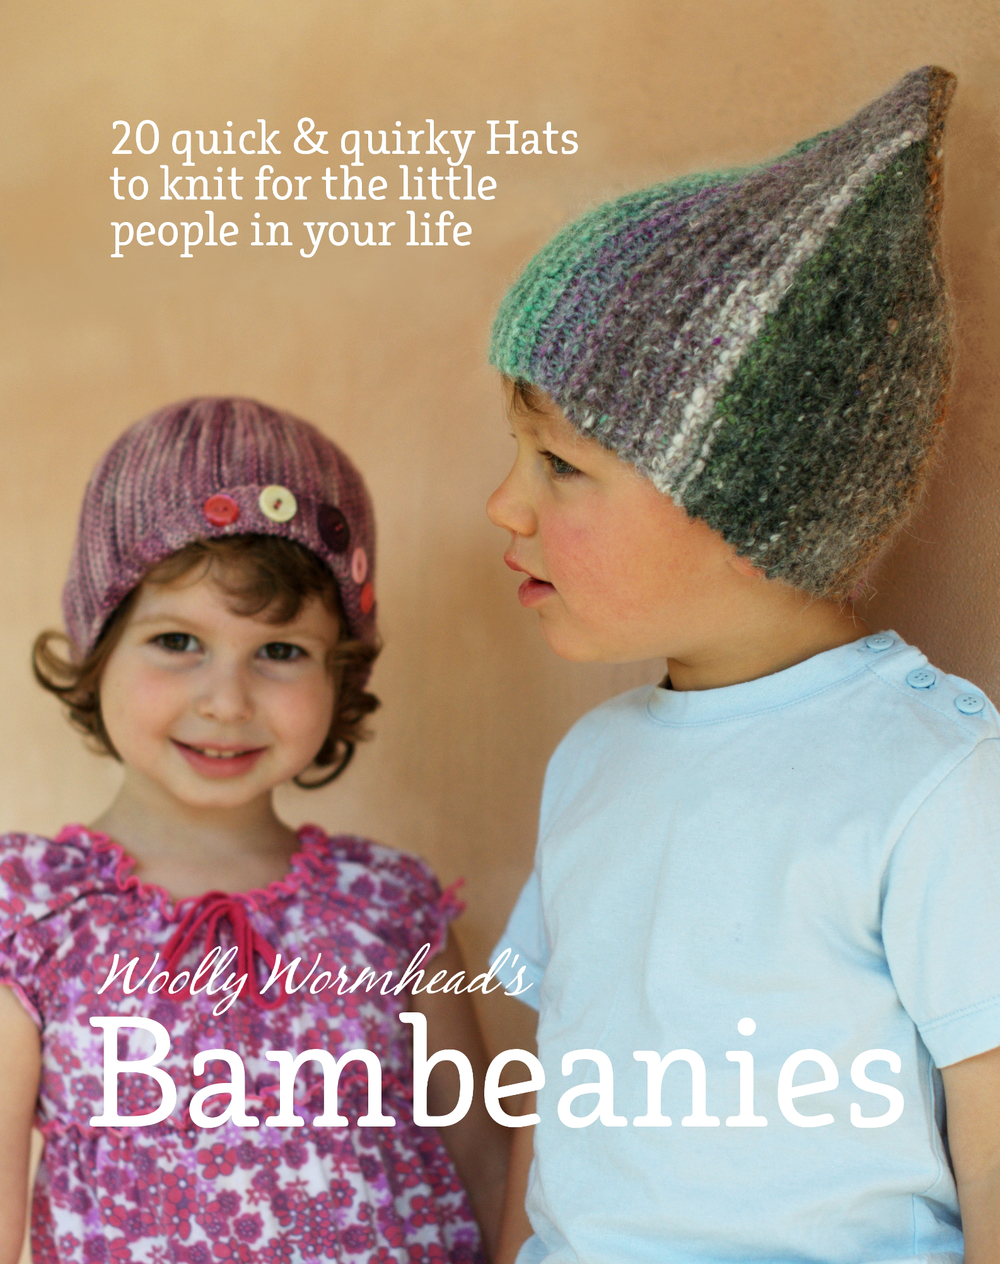 Bambeanies - 20 quick & quirky Hats to knit for the little people in your life